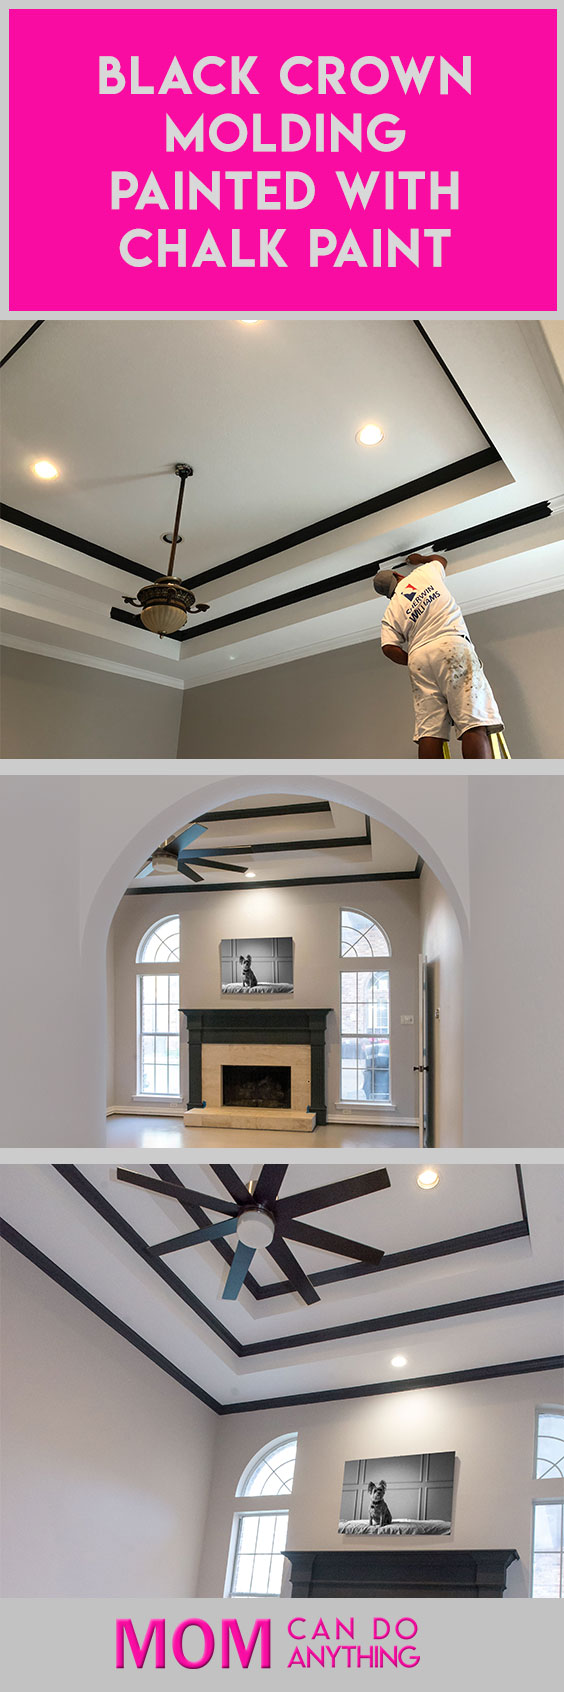 Black-Crown-Molding